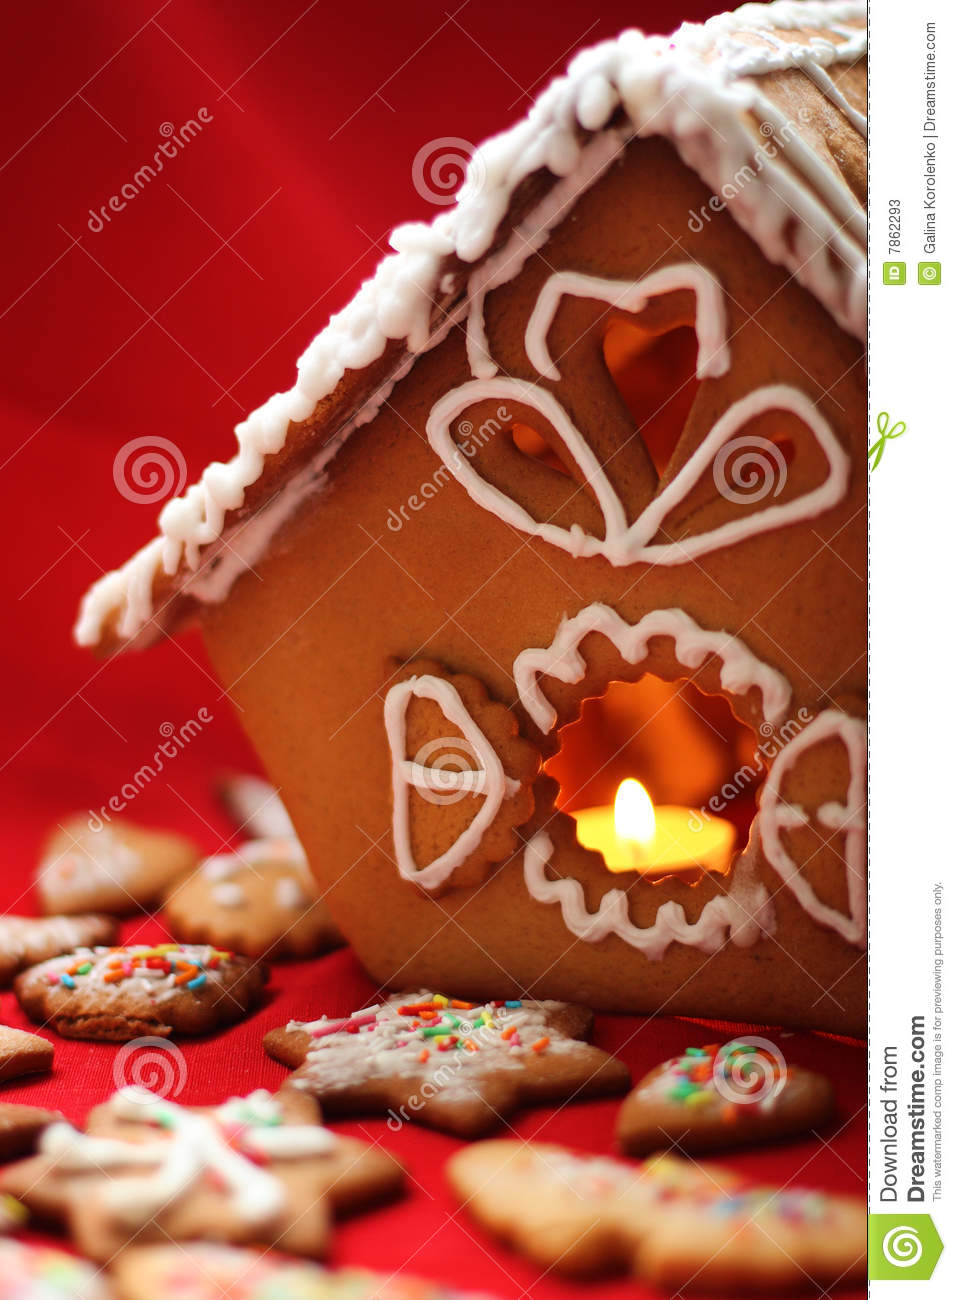 Honey cake house with a candle close up